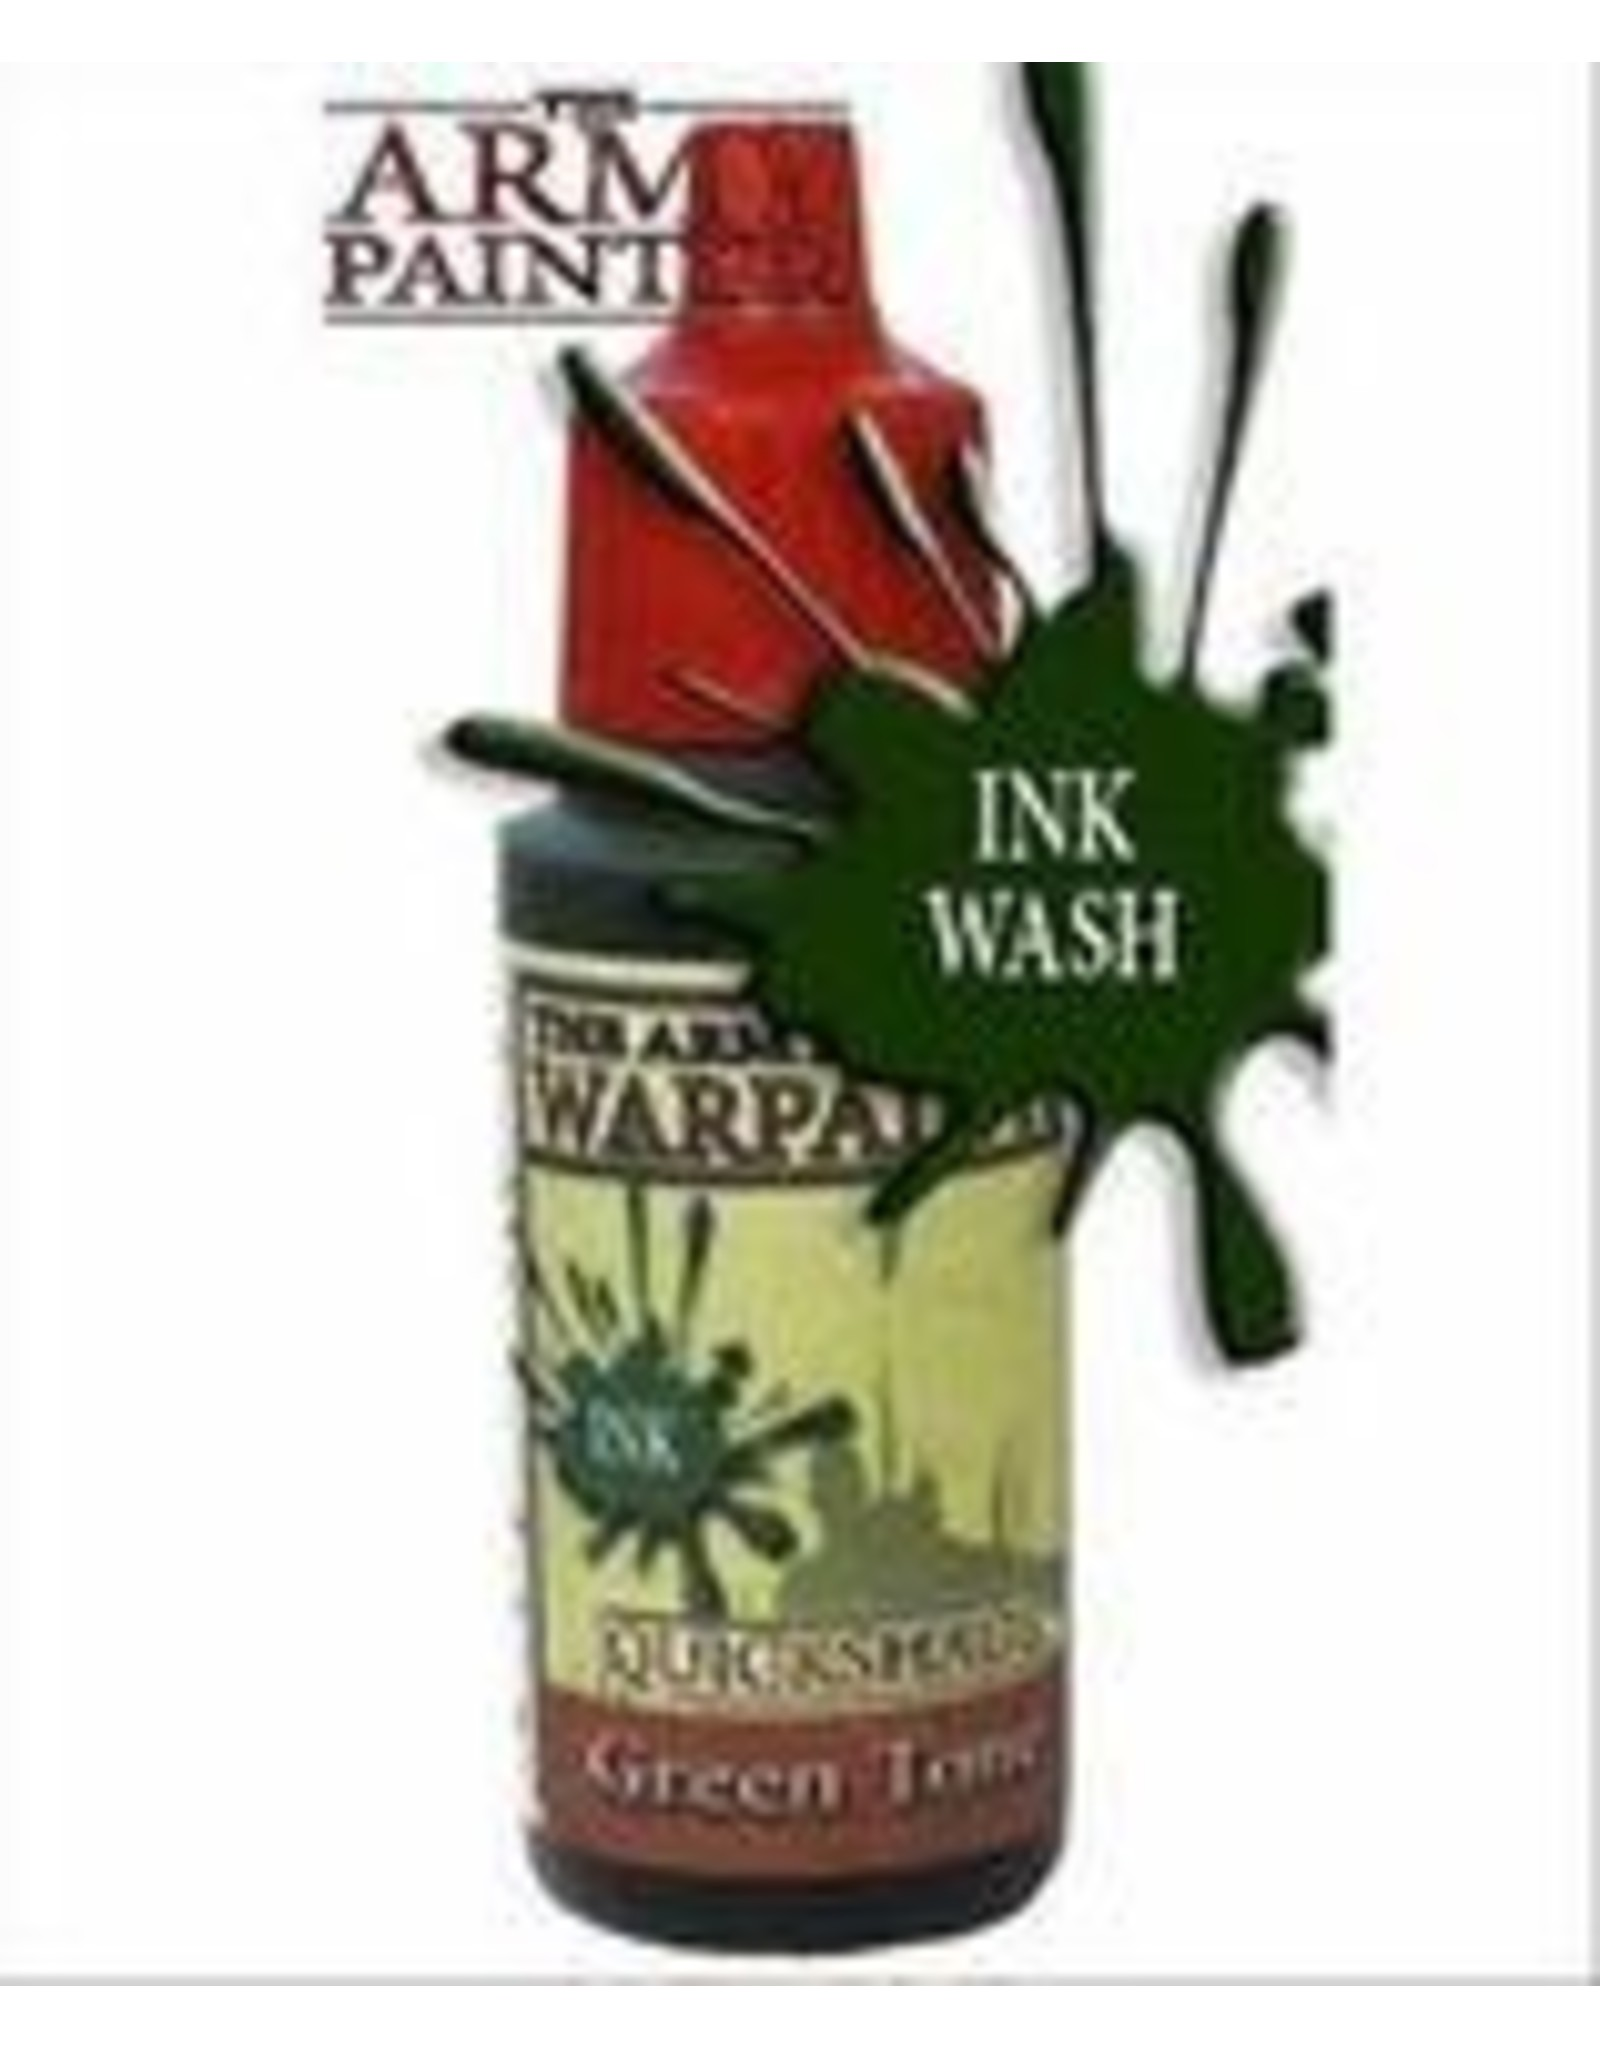 Army Painter Army Painter Washes: Green Tone